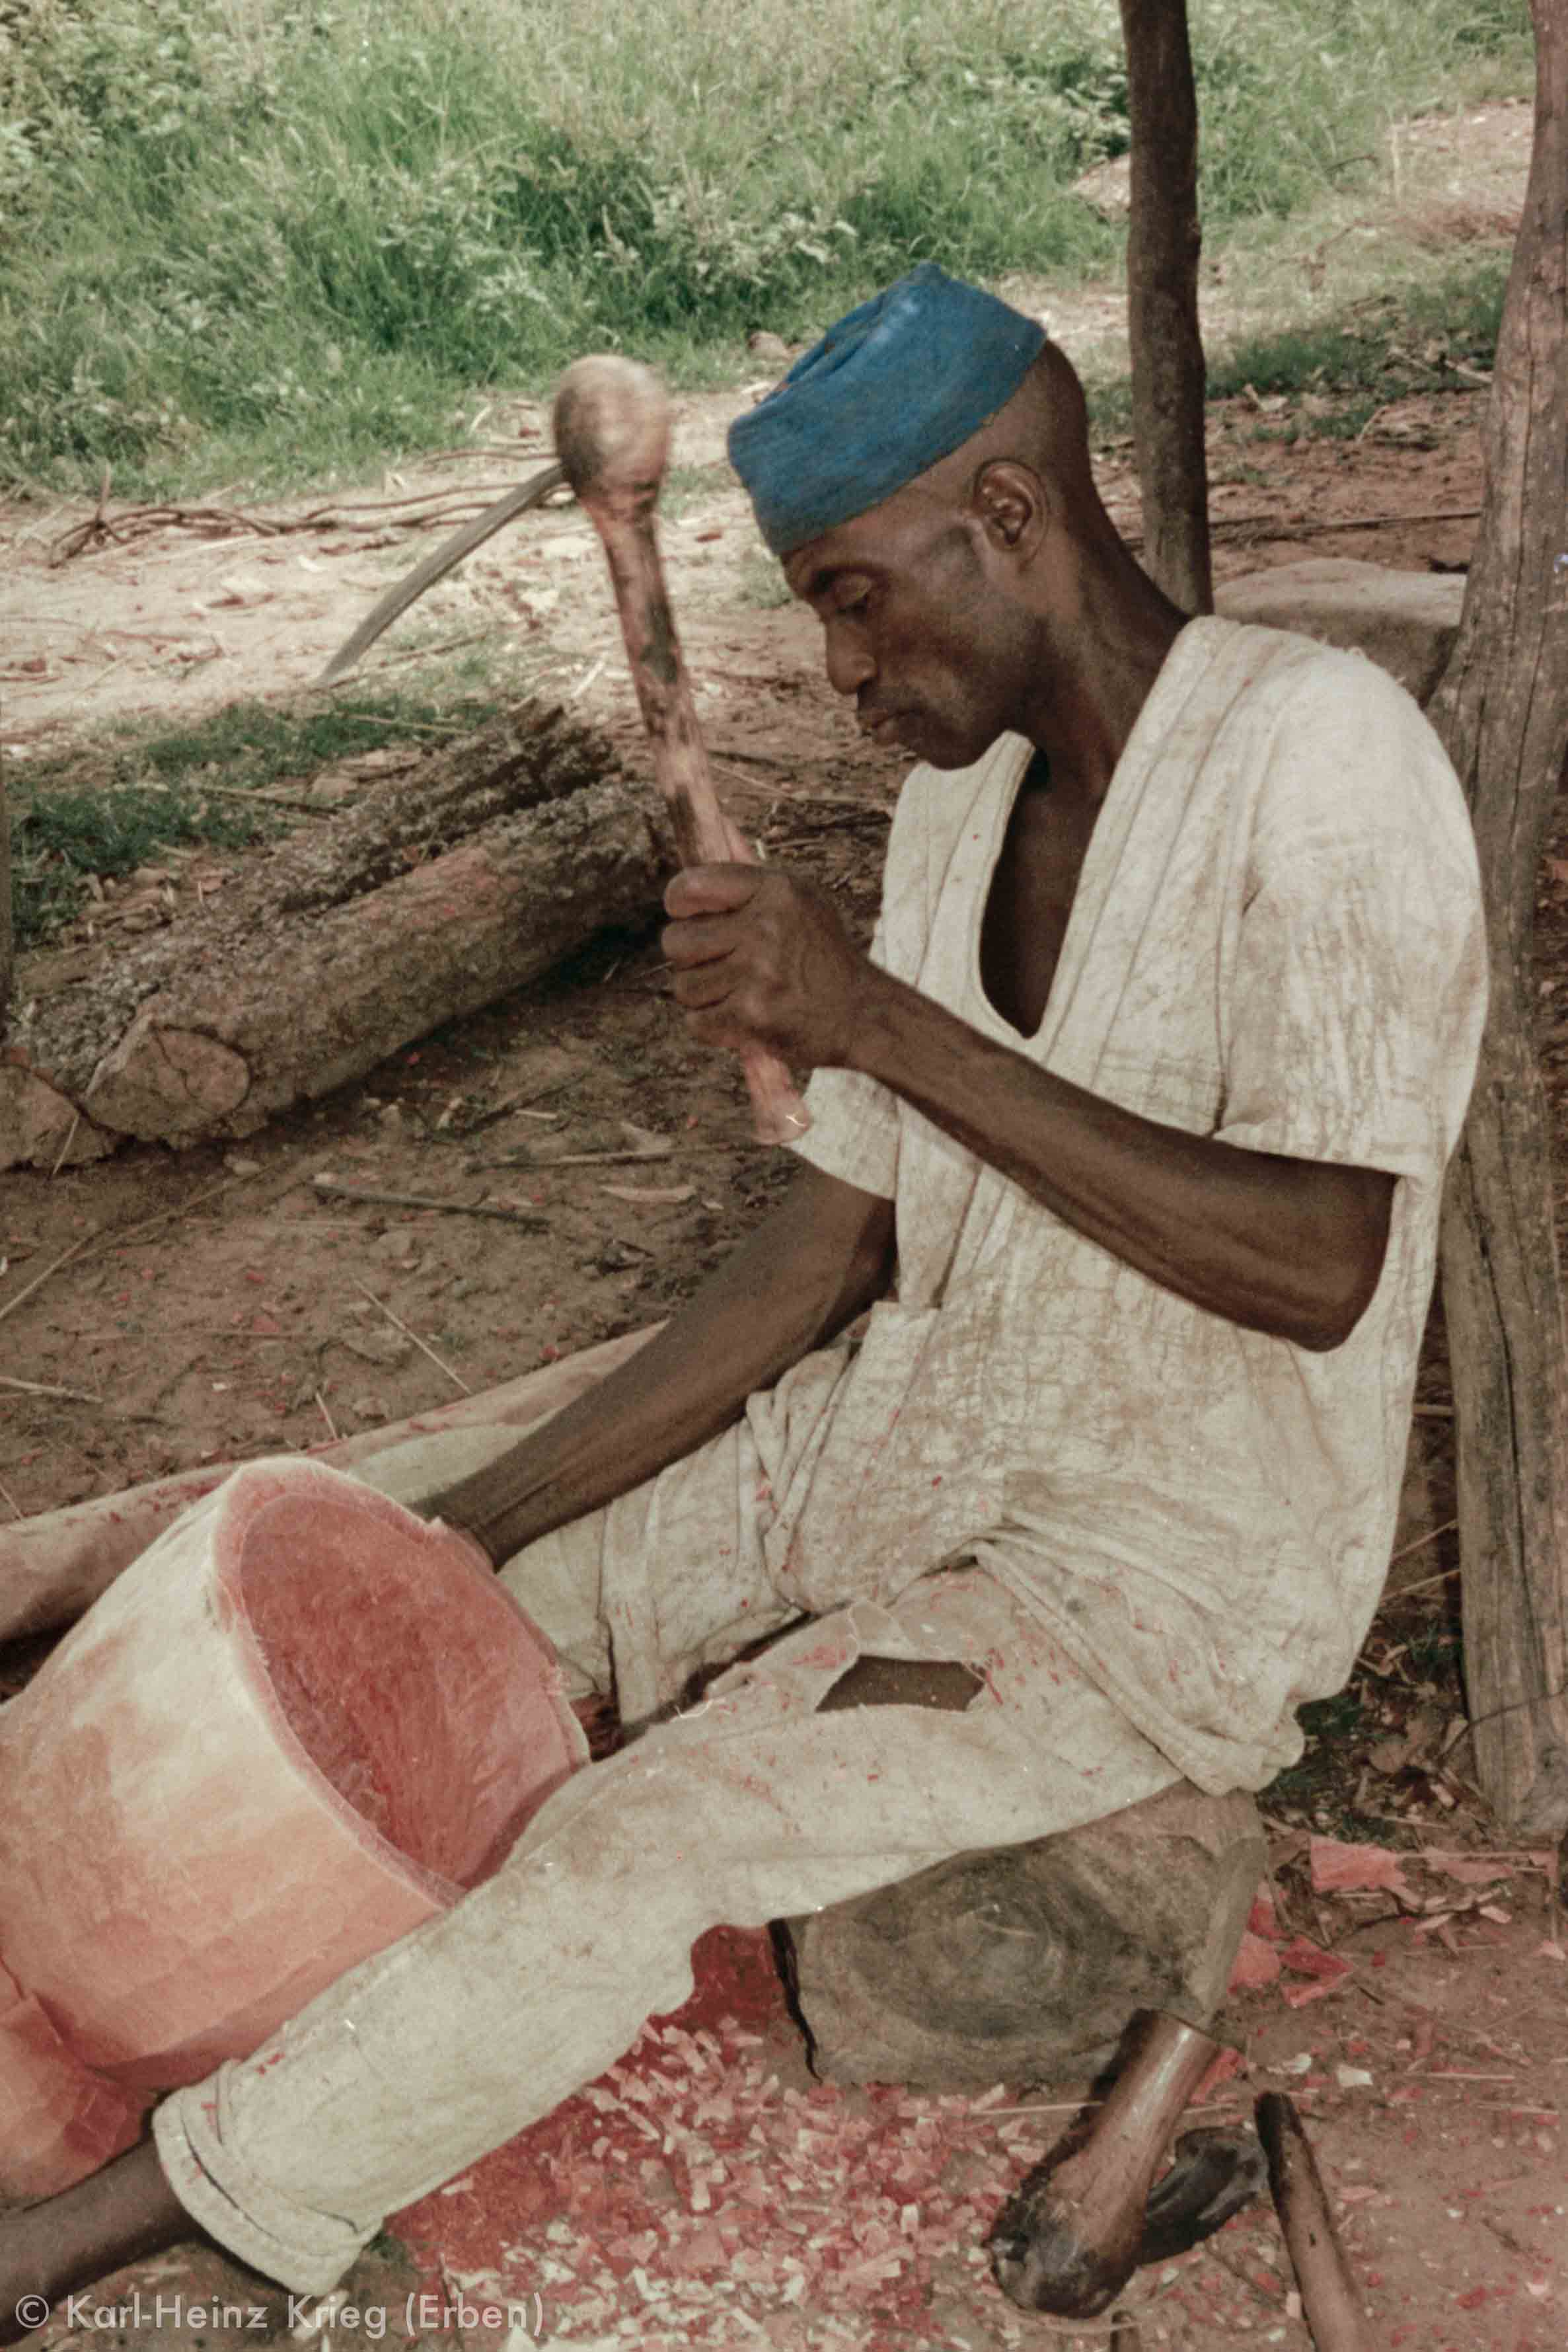 Kaparagnéné Koné carving in his workplace. Photo: Karl-Heinz Krieg, Kolia (Region of Boundiali, Côte d'Ivoire), 1977